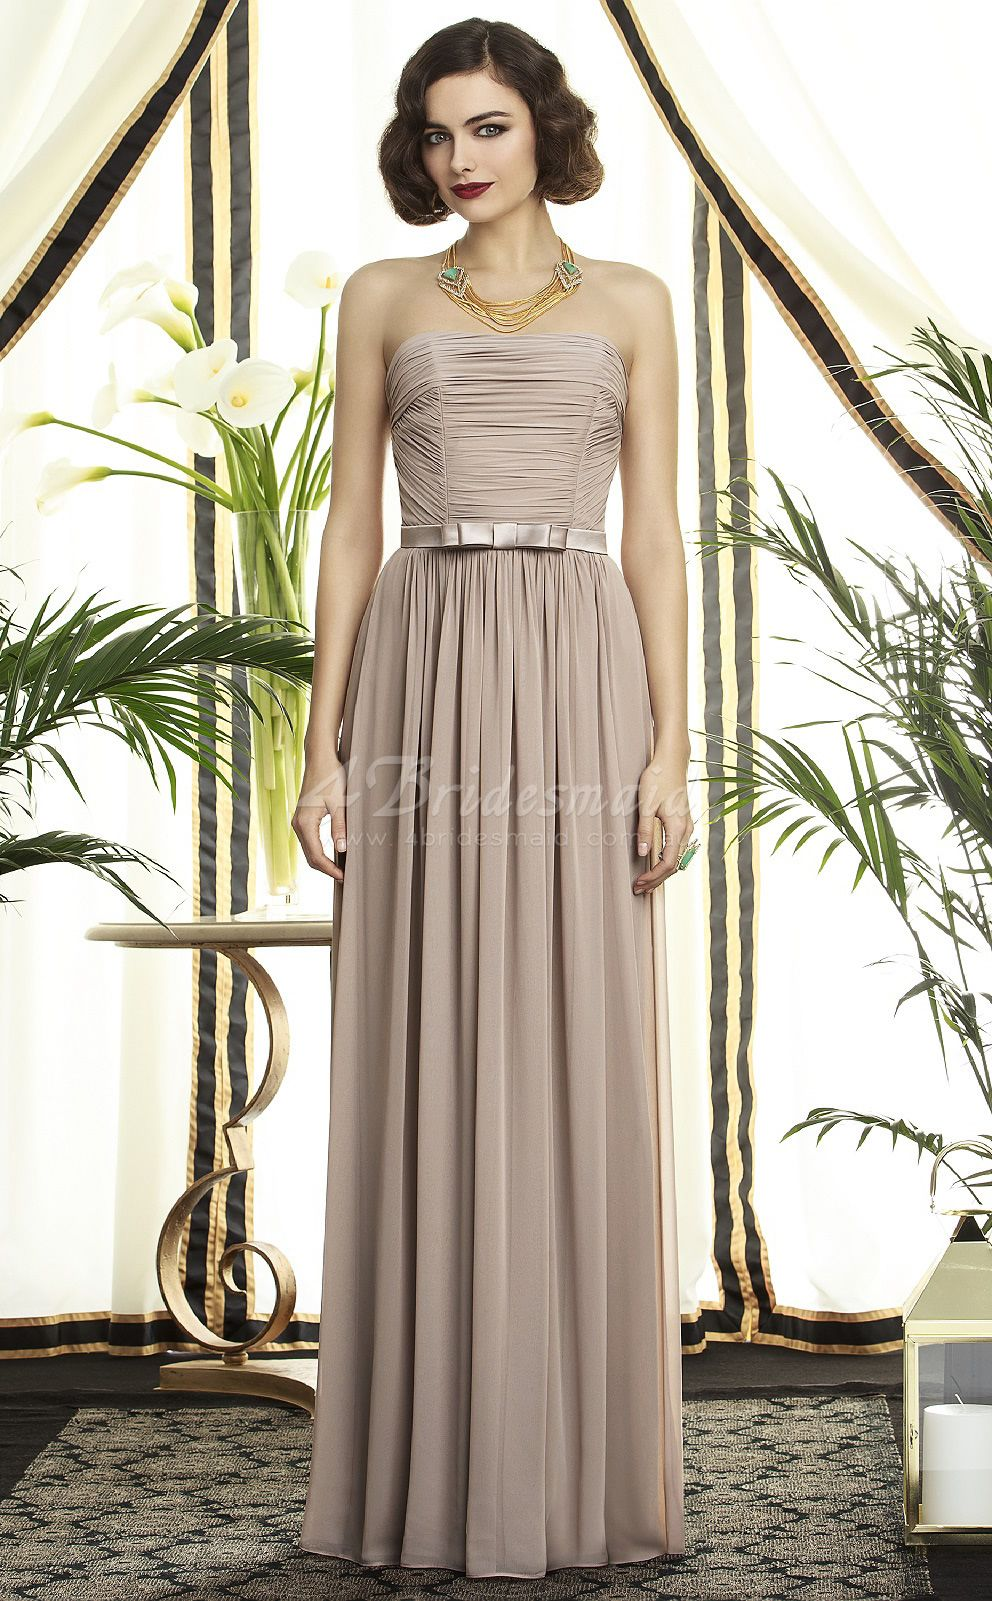 Gray chiffon a line strapless floor length bridesmaid dresses gray chiffon a line strapless floor length bridesmaid dressesbd742 ombrellifo Choice Image